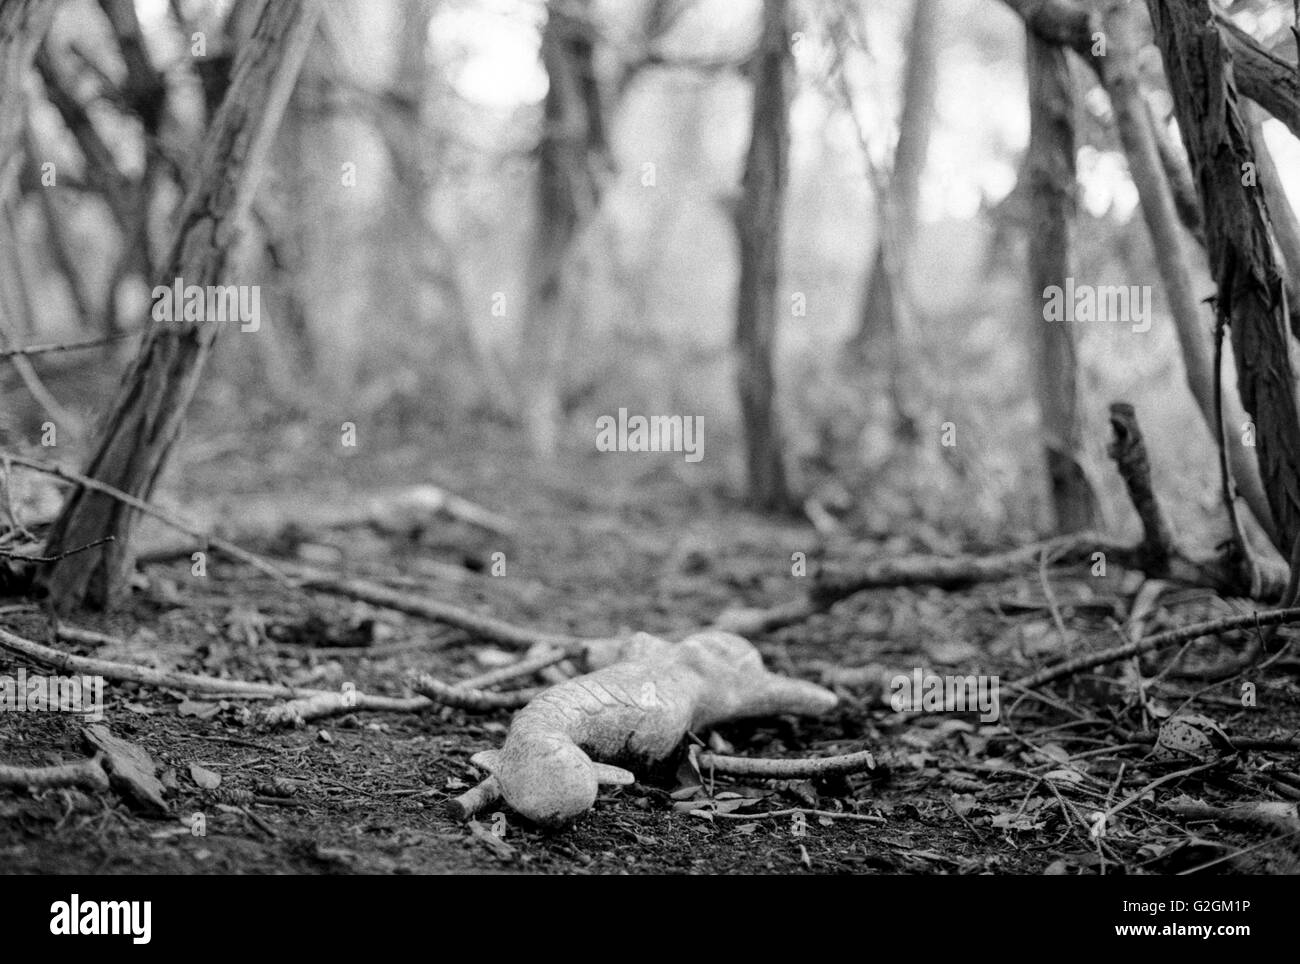 Stone Mermaid Figurine on Ground in Clearing, Close-Up - Stock Image